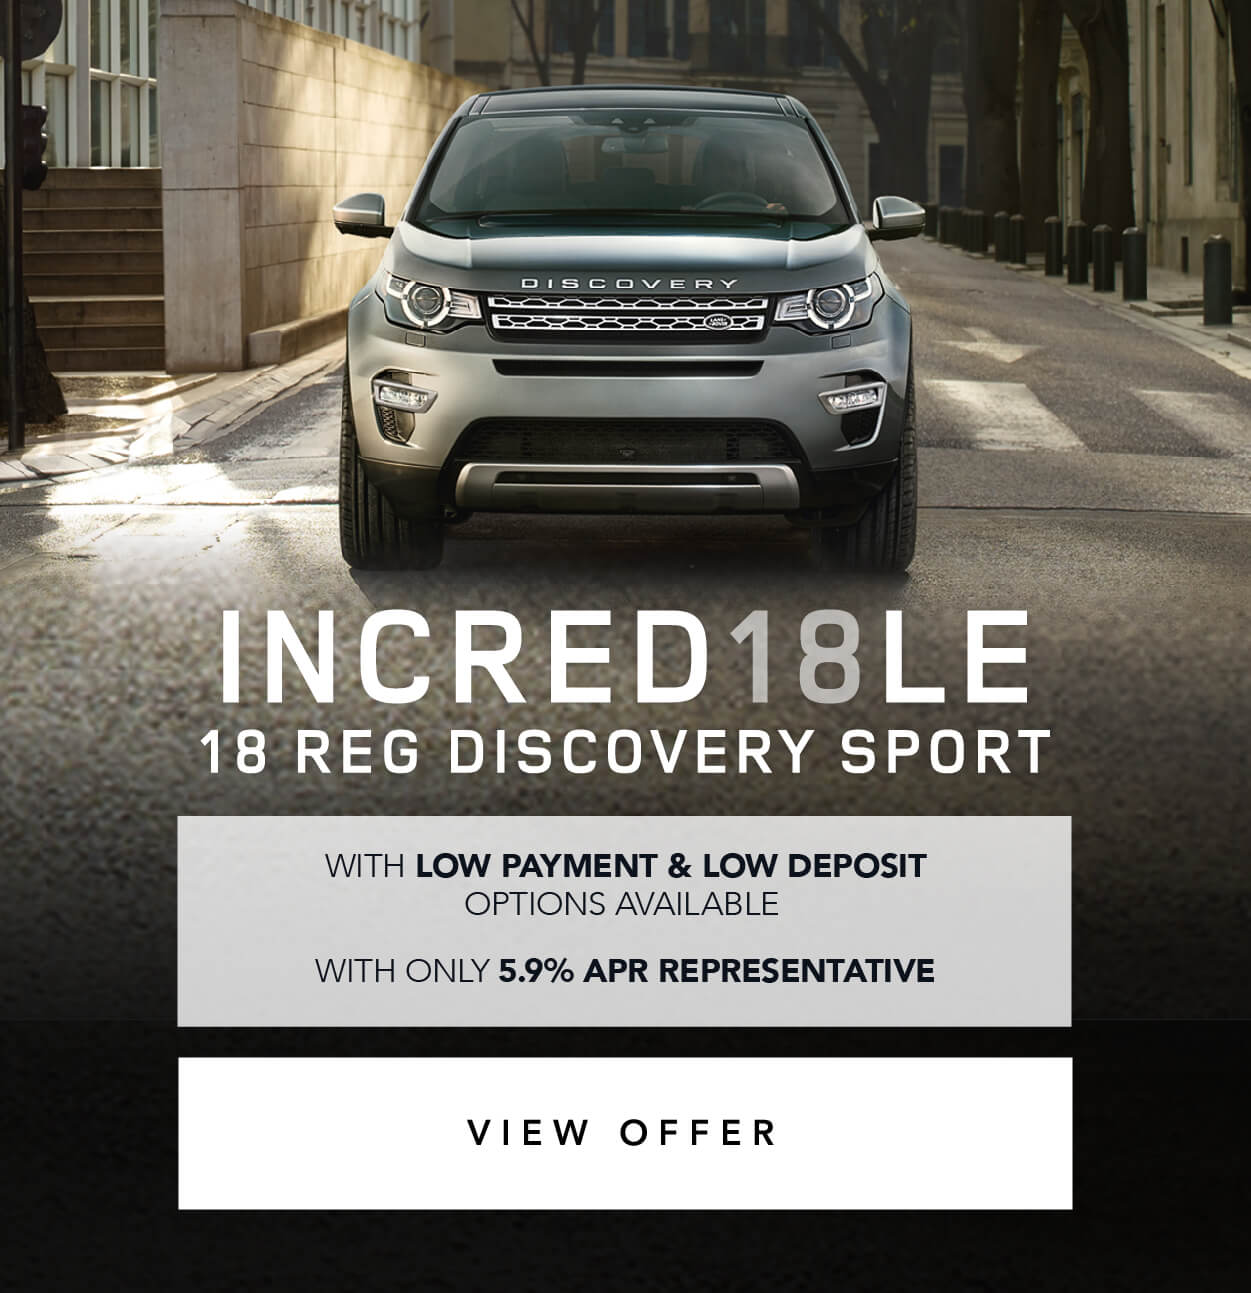 Land Rover Incredible 18 Reg Discovery Sport BB